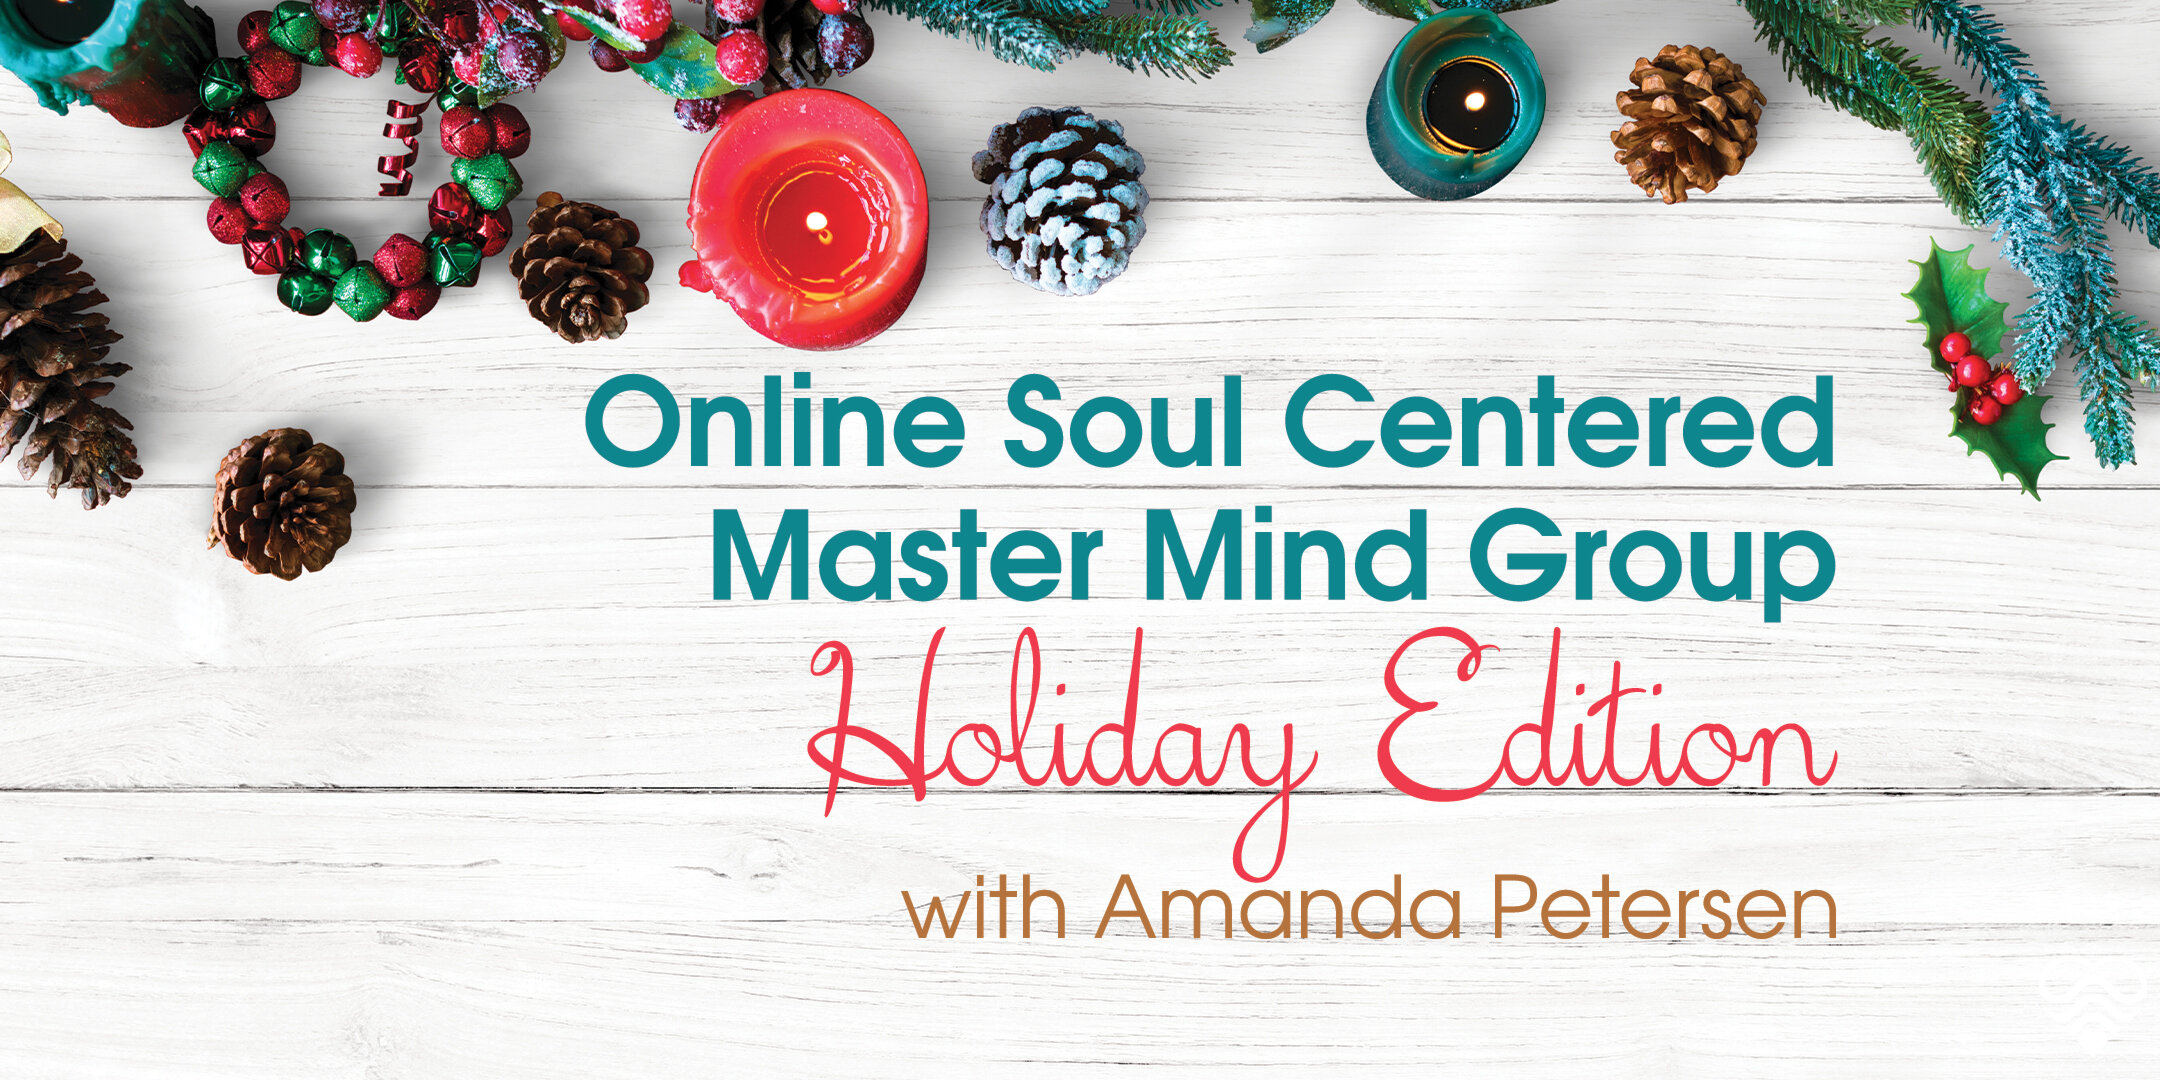 PoG_Eventbrite_Amanda_Soul-Centered-Mastermind---Holiday-Edition.jpg